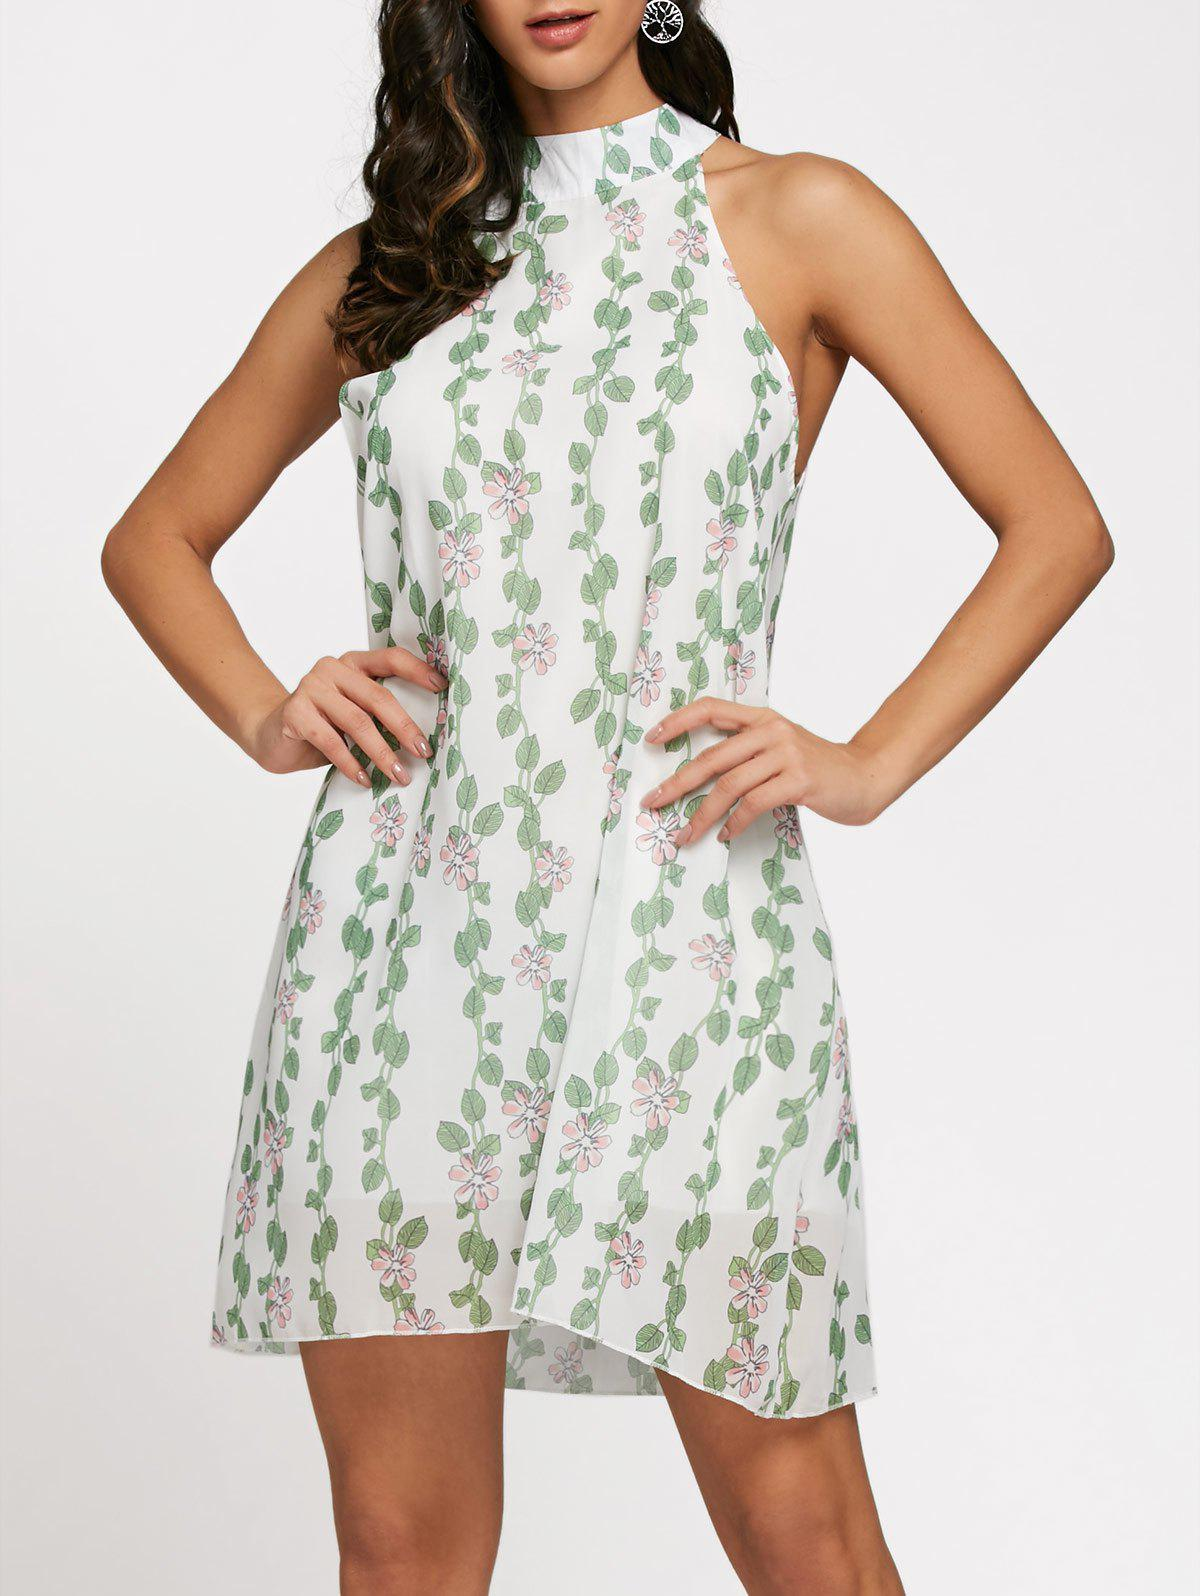 Floral Leaf Printed Chiffon Sleeveless Shift Dress sleeveless floral leaf printed vintage dress